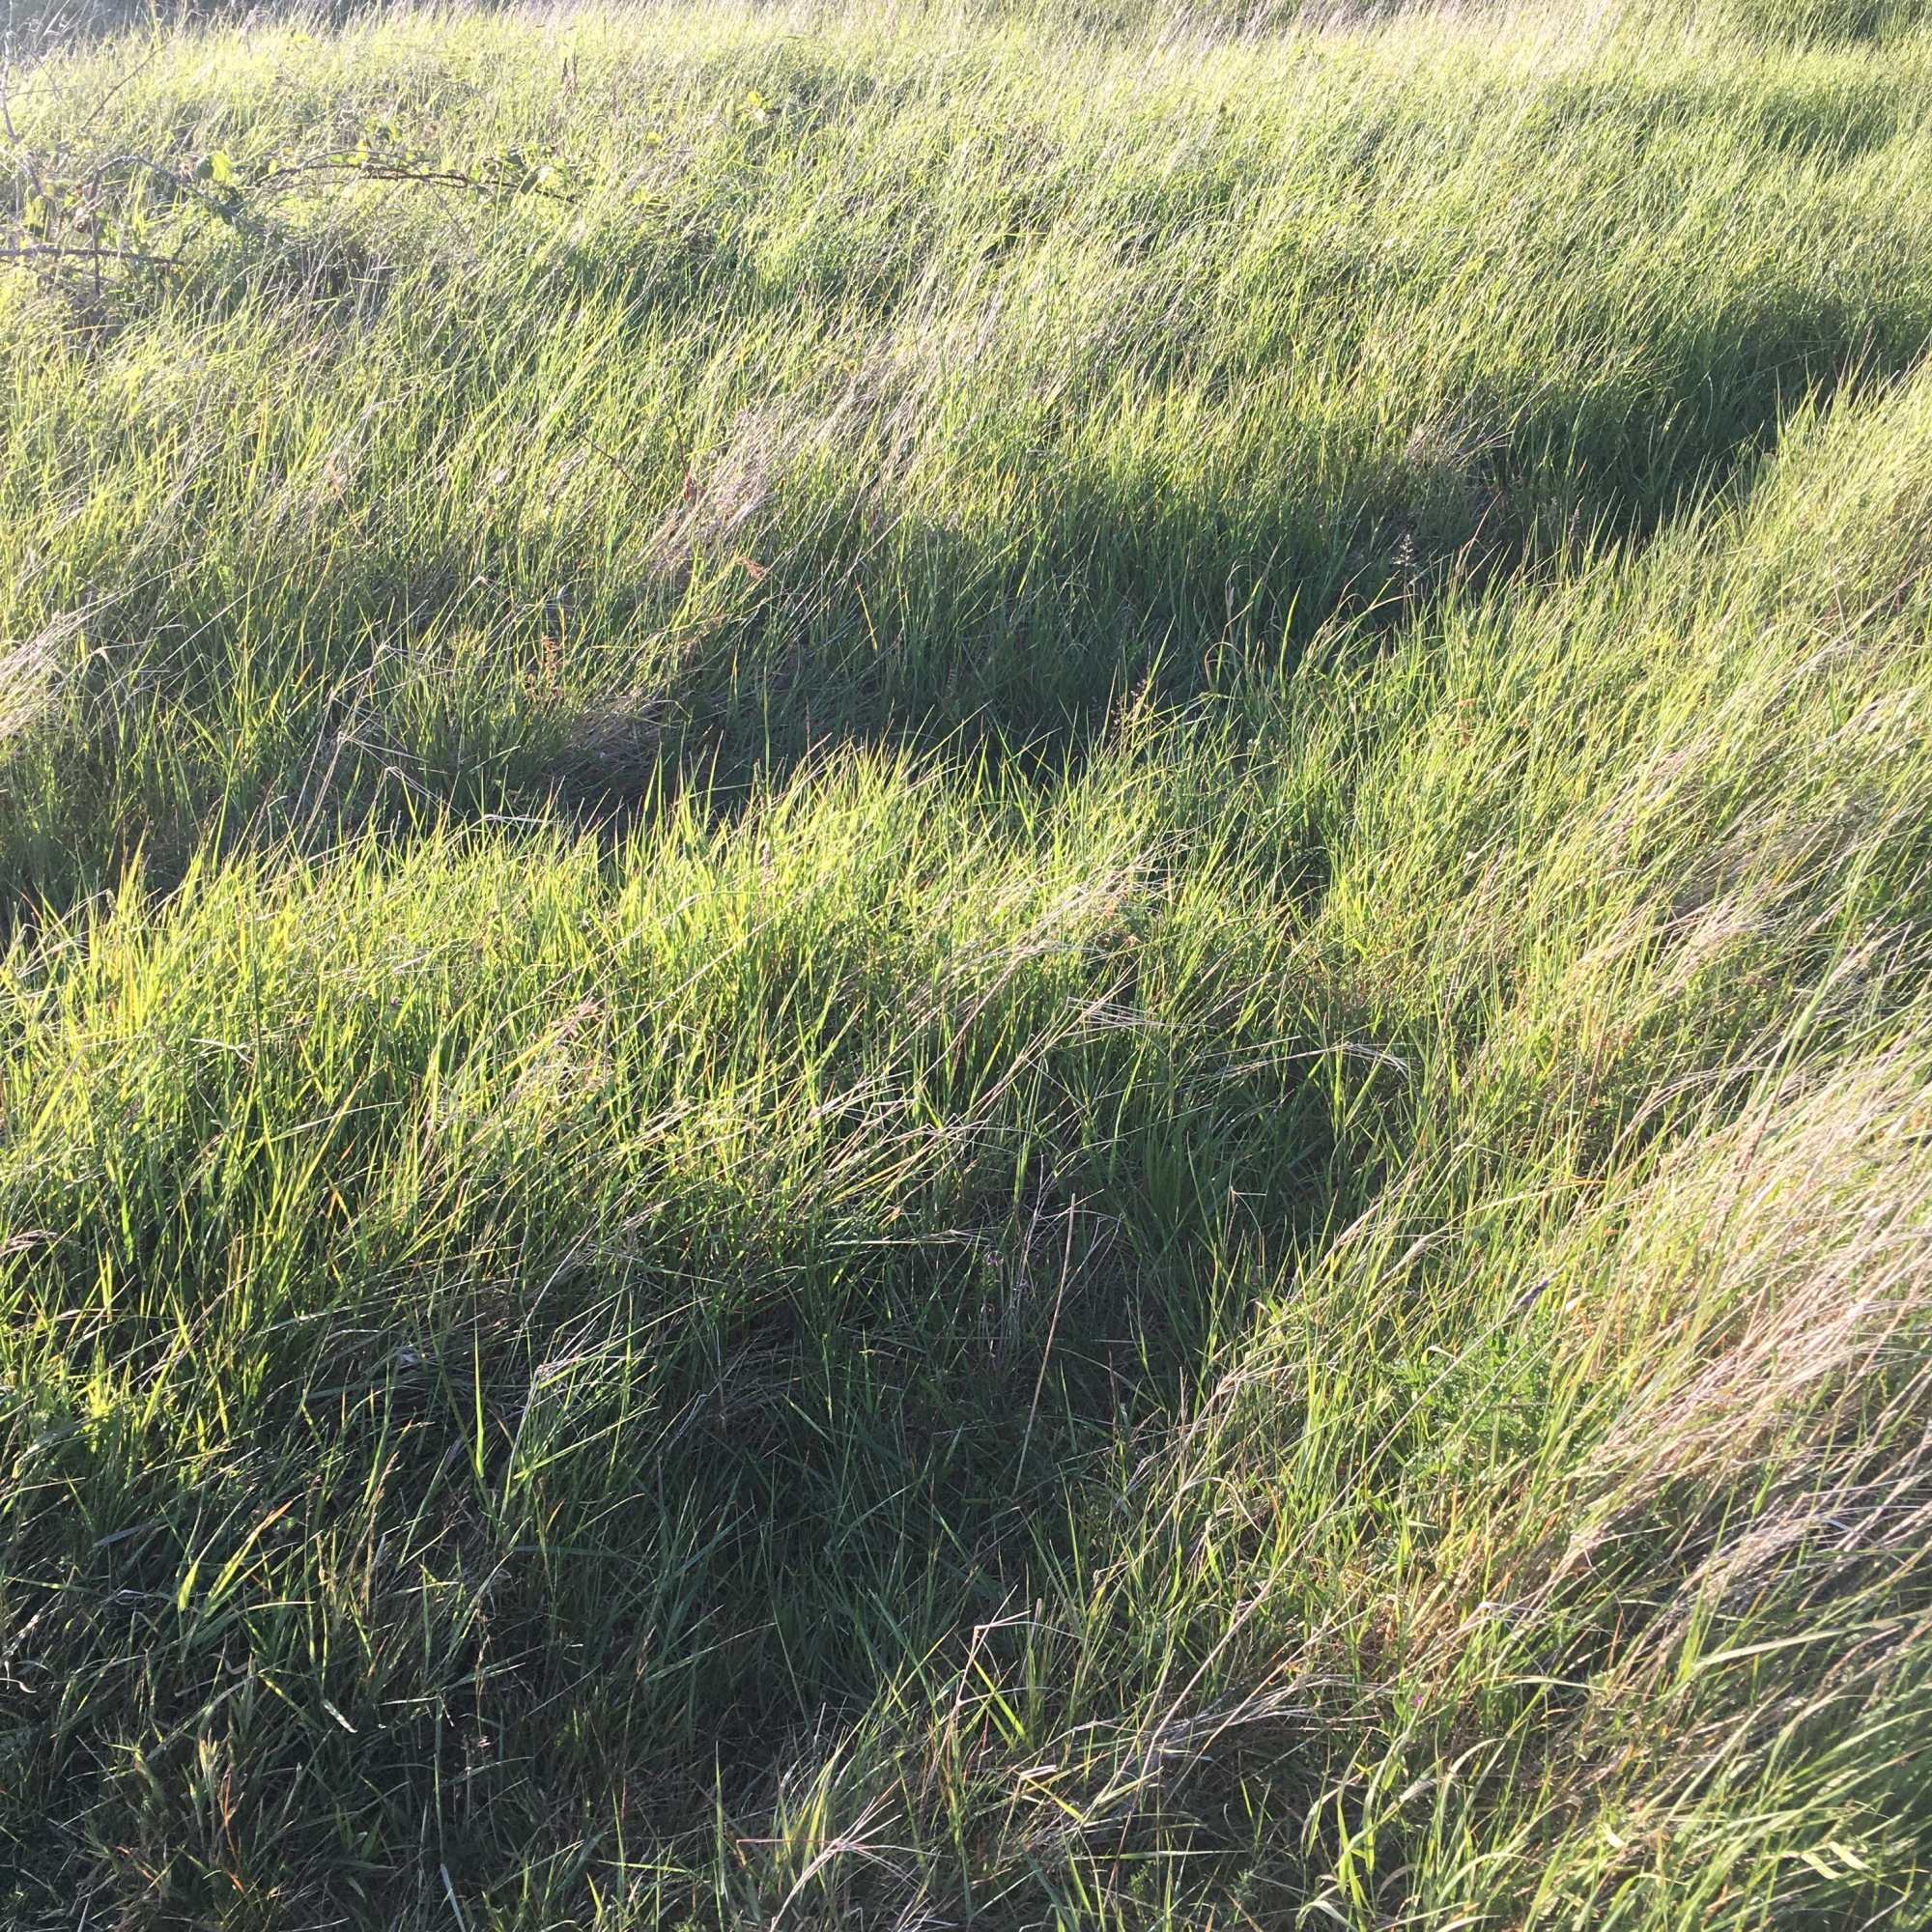 Grasses Project - Paths - animal track - Path No8 - Burry Port 2020